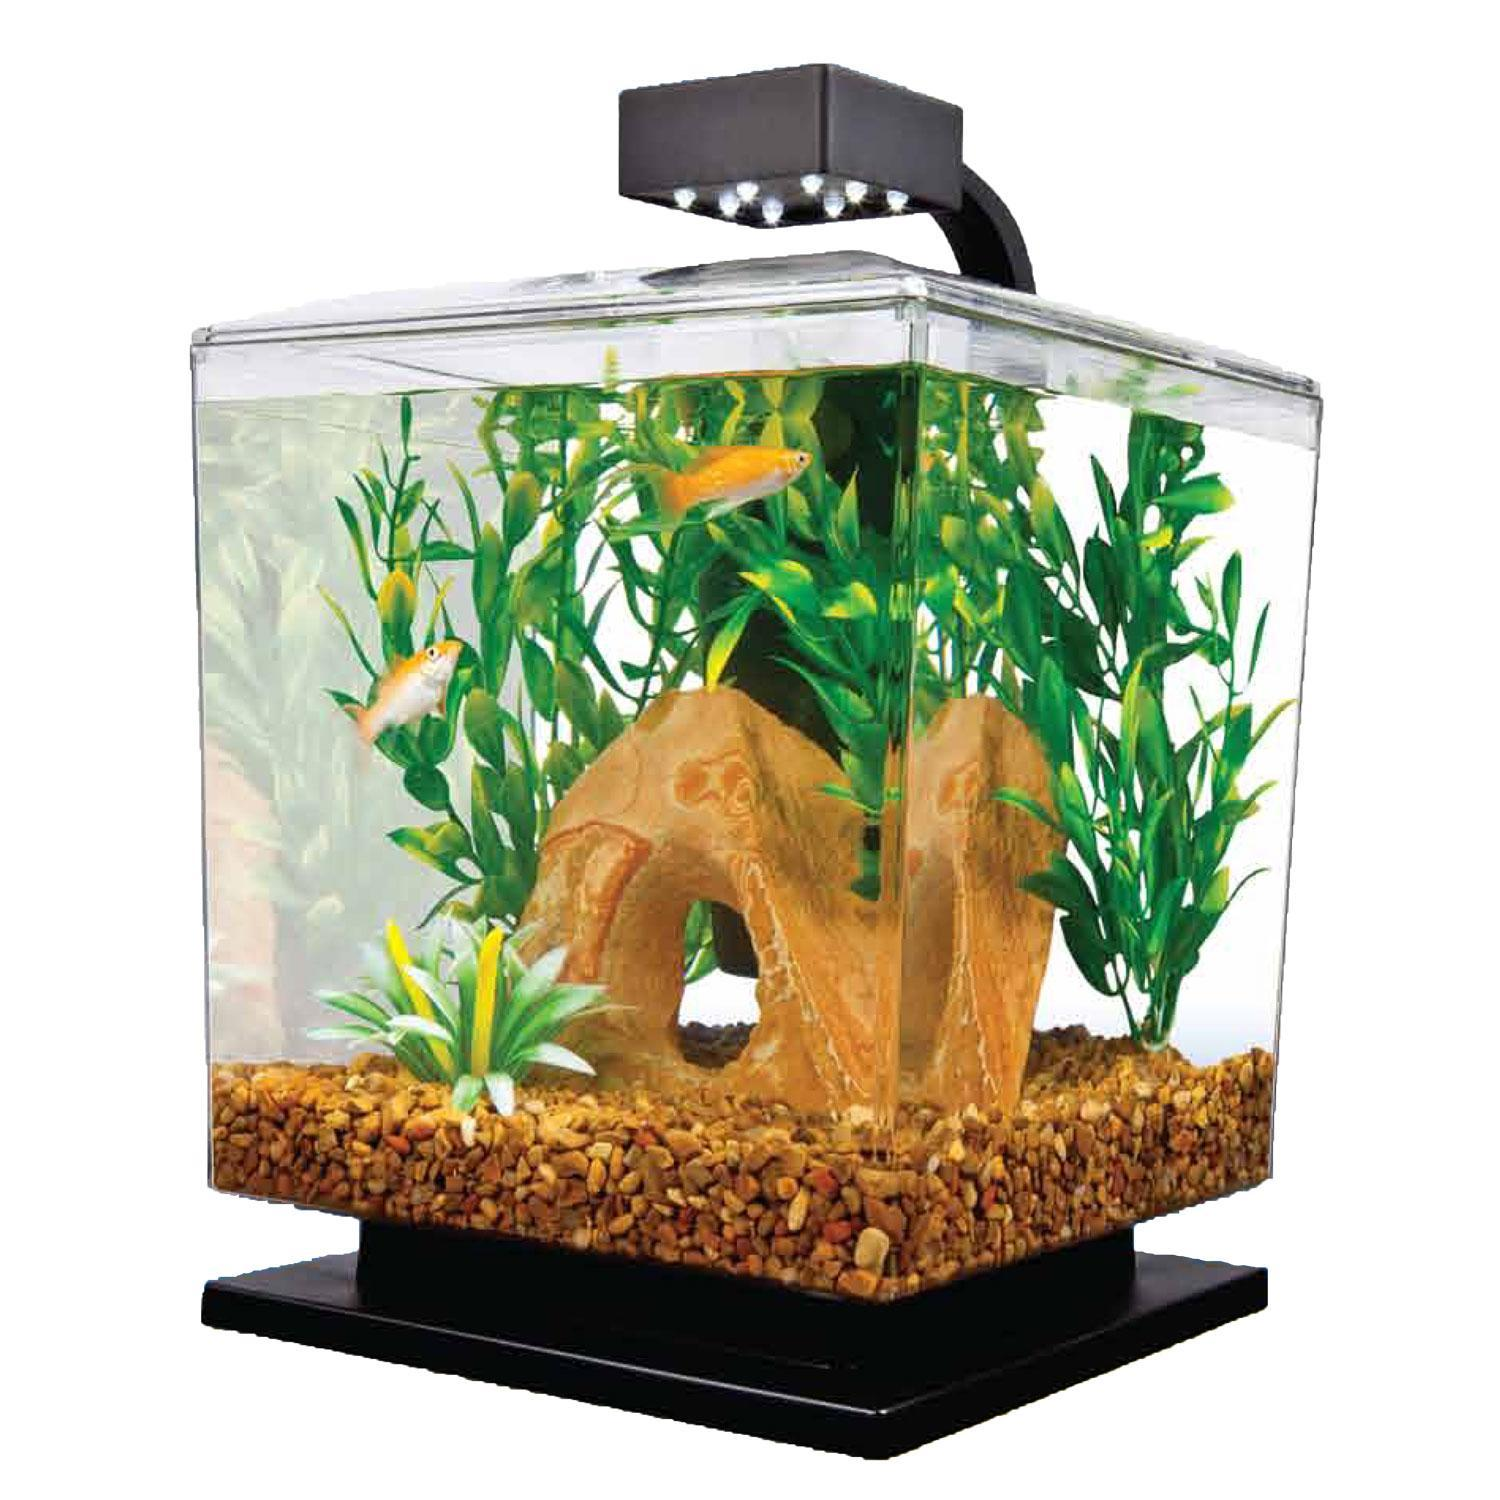 Tetra 1 5 gallon led desktop aquarium kit from for Desktop fish tank